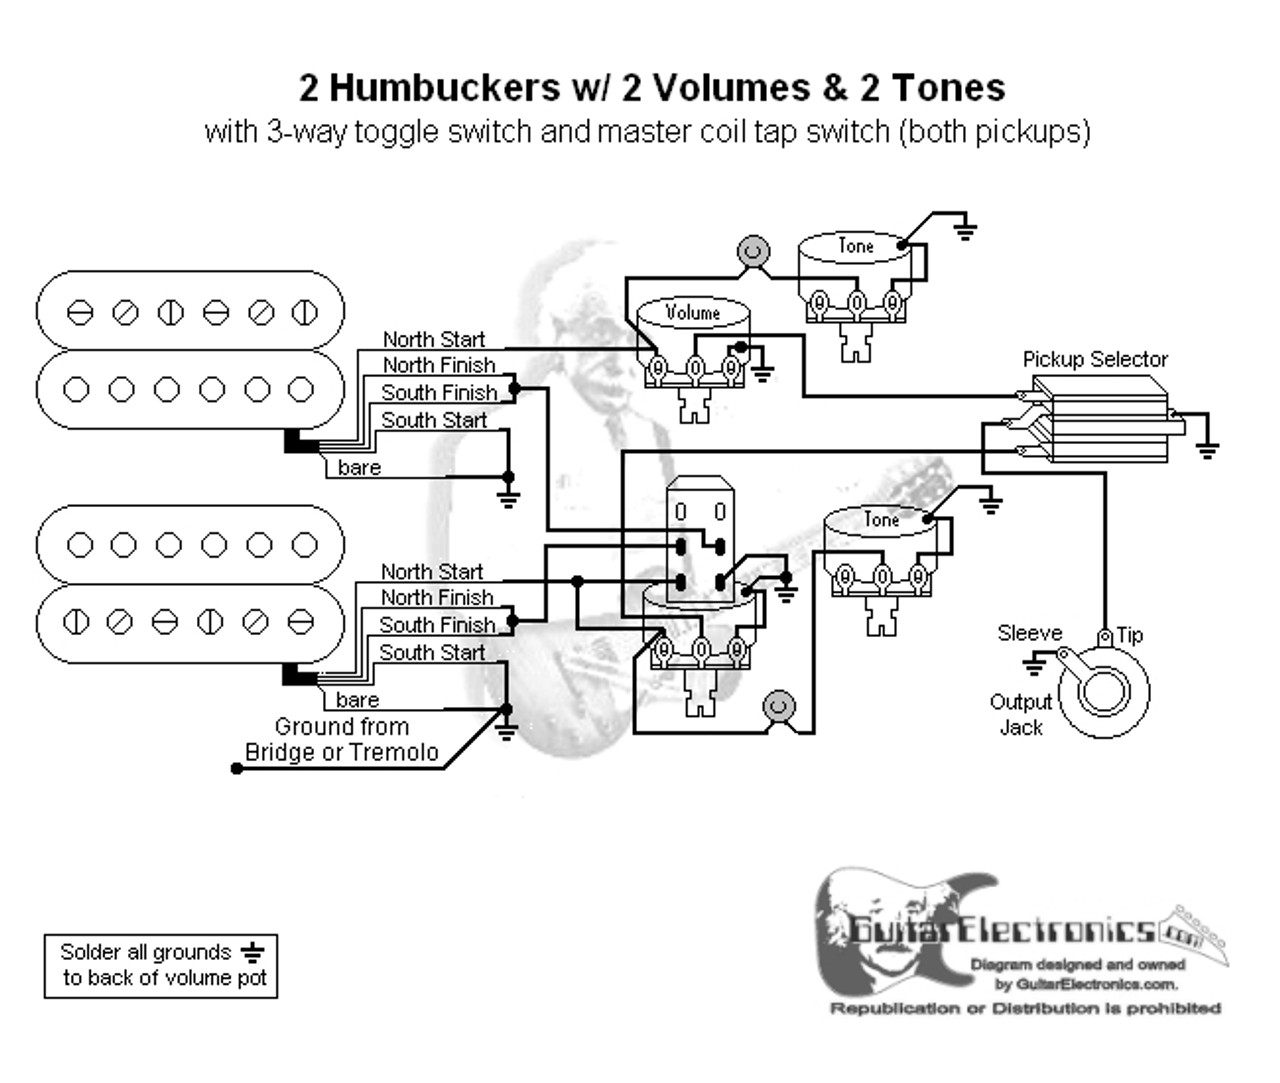 Guitar Coil Tap Wiring Diagrams - My Wiring Diagram on push pull pot wiring, fender jazz bass split coil wiring, humbucker coil tap wiring-diagram, humbucker split diagram, seymour duncan split coil wiring,